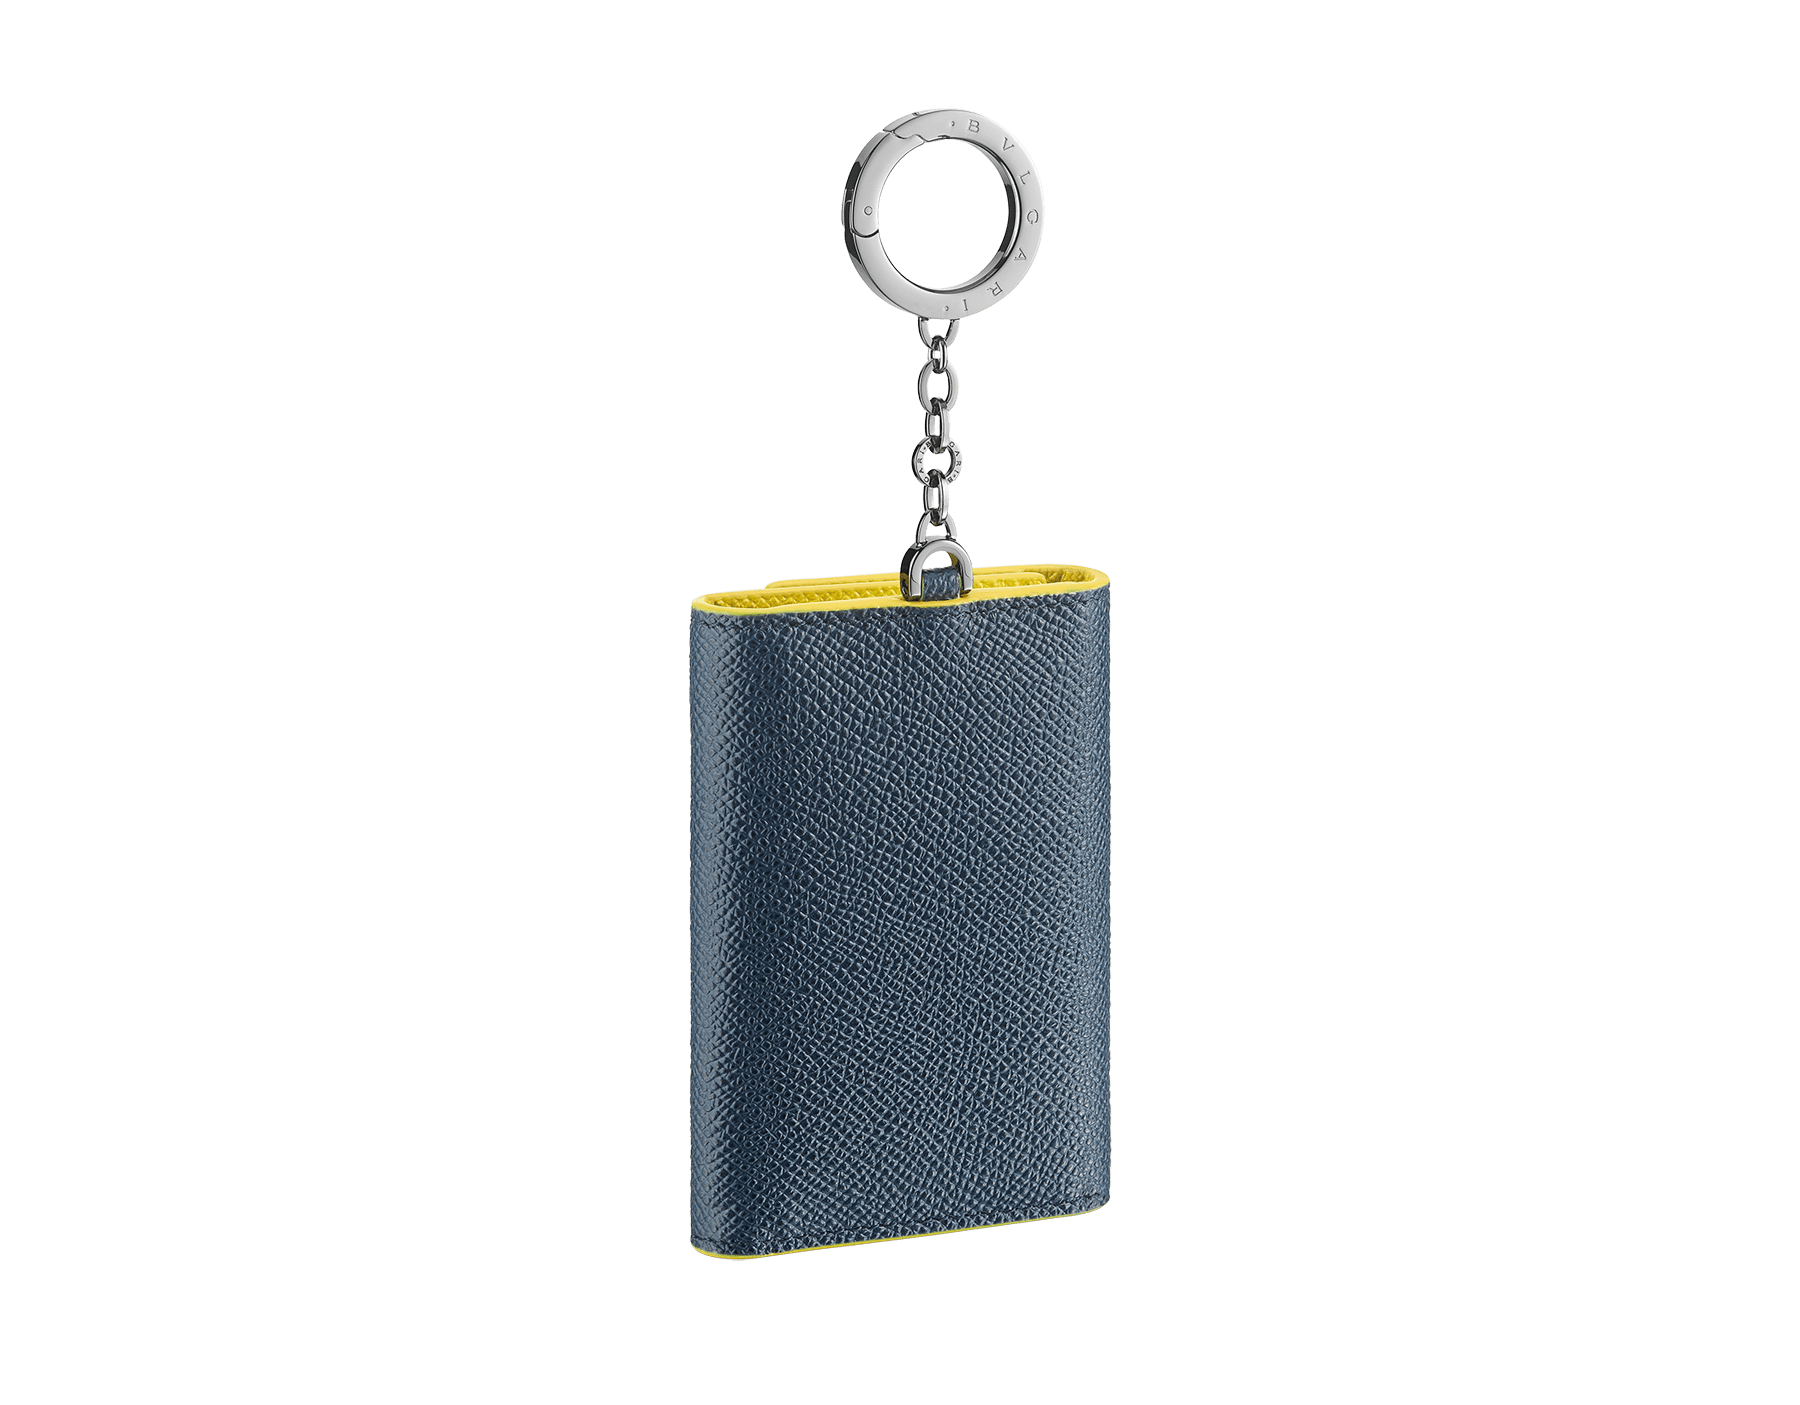 BVLGARI BVLGARI key holder in denim sapphire and daisy topaz grain calf leather. Iconic logo décor and snap hook in palladium-plated brass. 289866 image 3